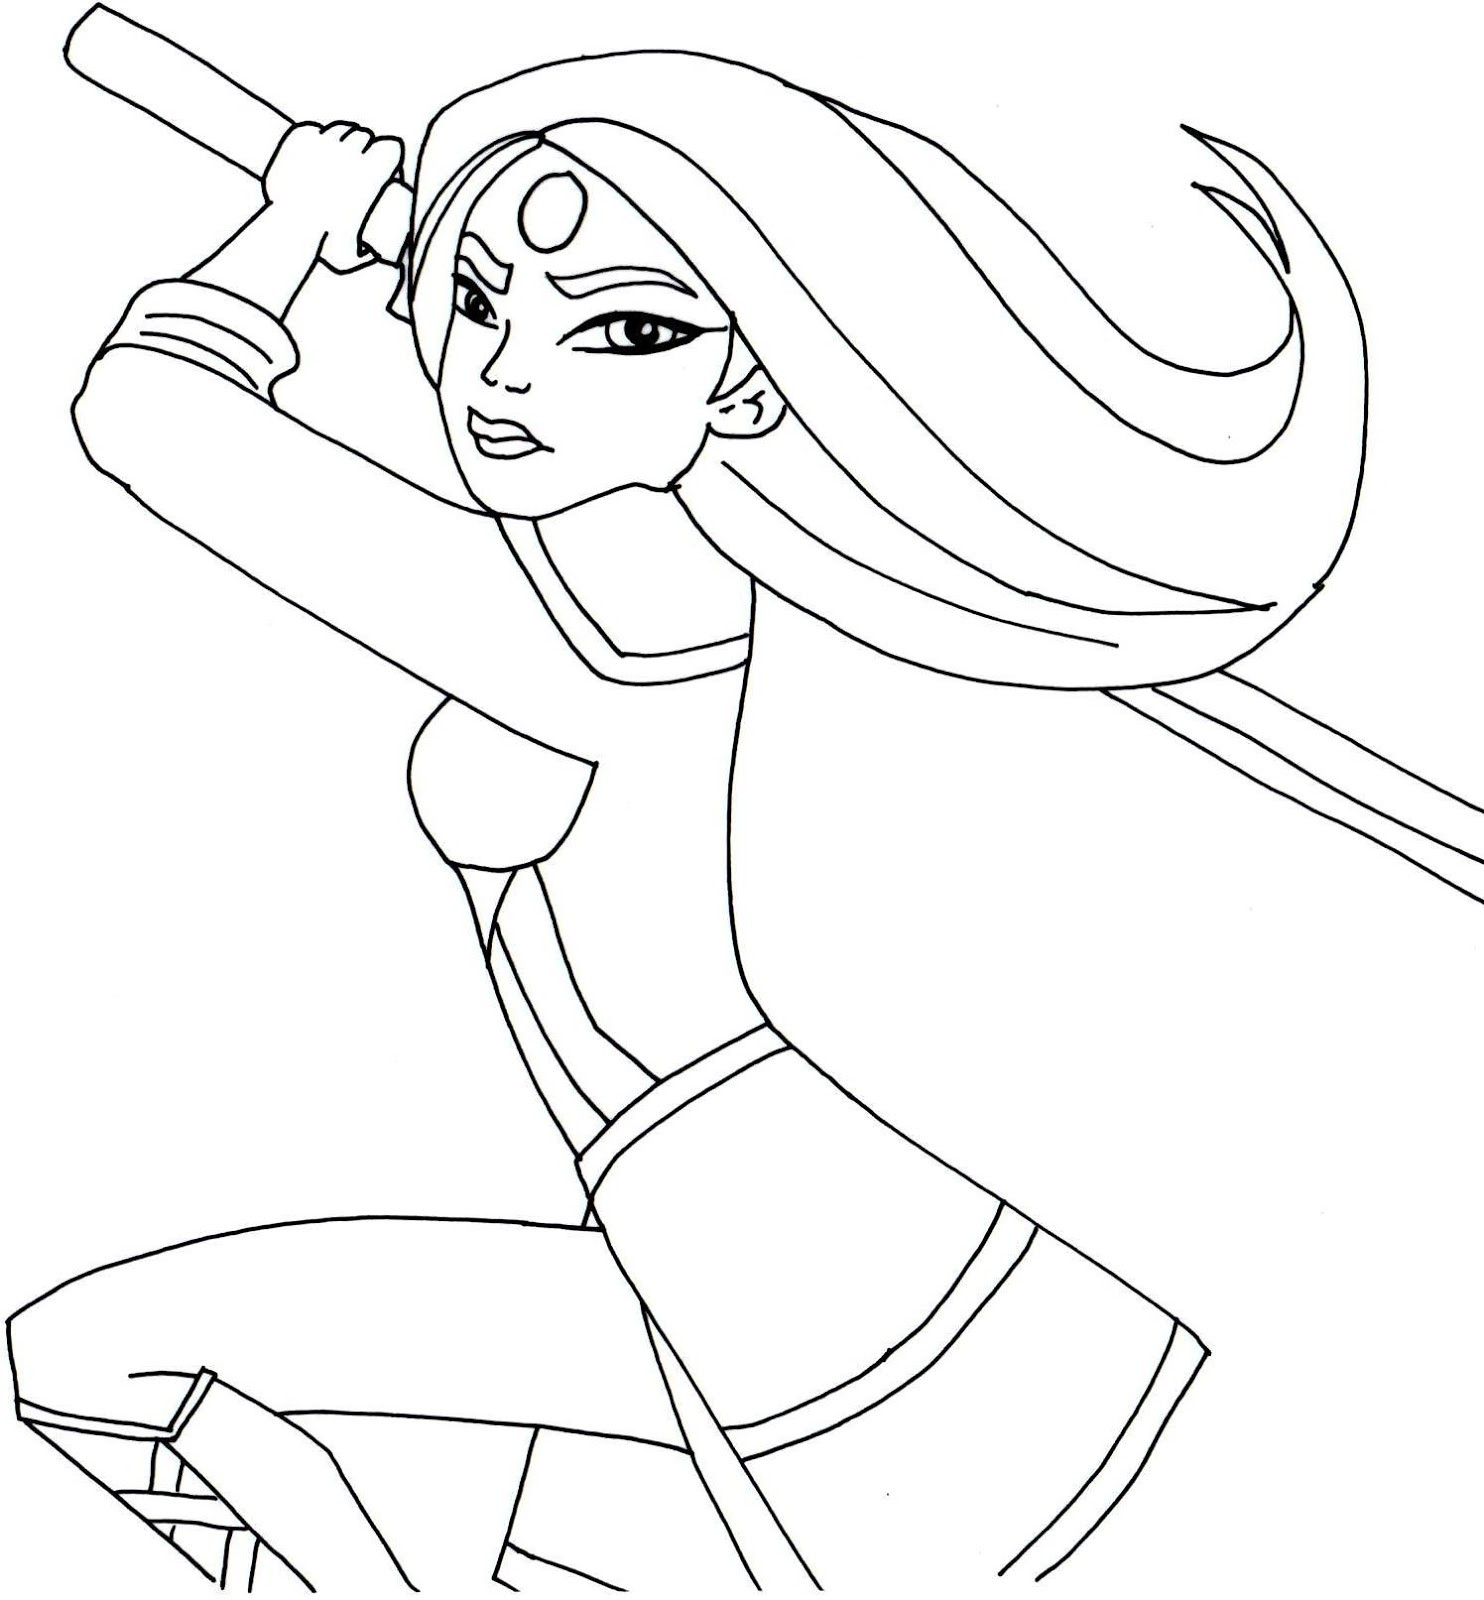 coloring pages to print for girls Collection-Girl Coloring Pages For Kids Best Coloring Pages For Girls Lovely Printable Cds 0d – Fun Time 11-d